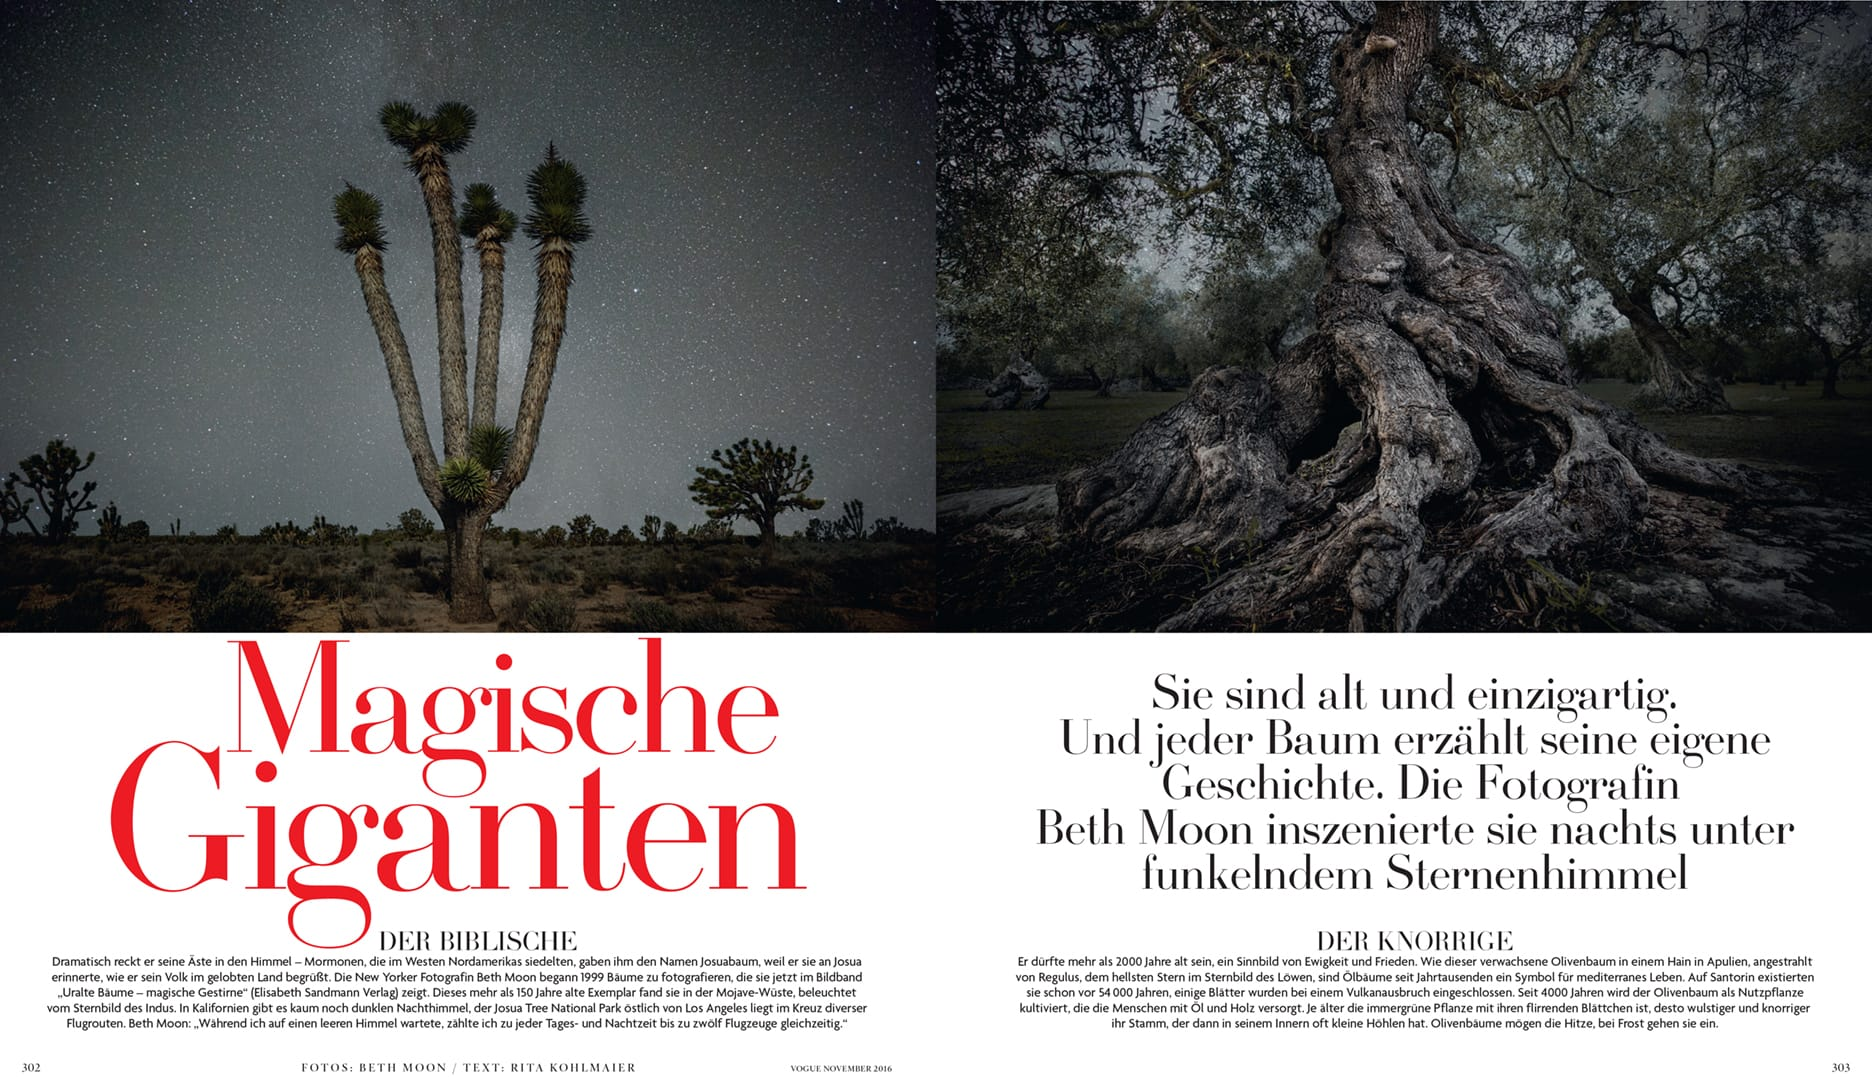 Vogue (Germany) | November 2016 302-303